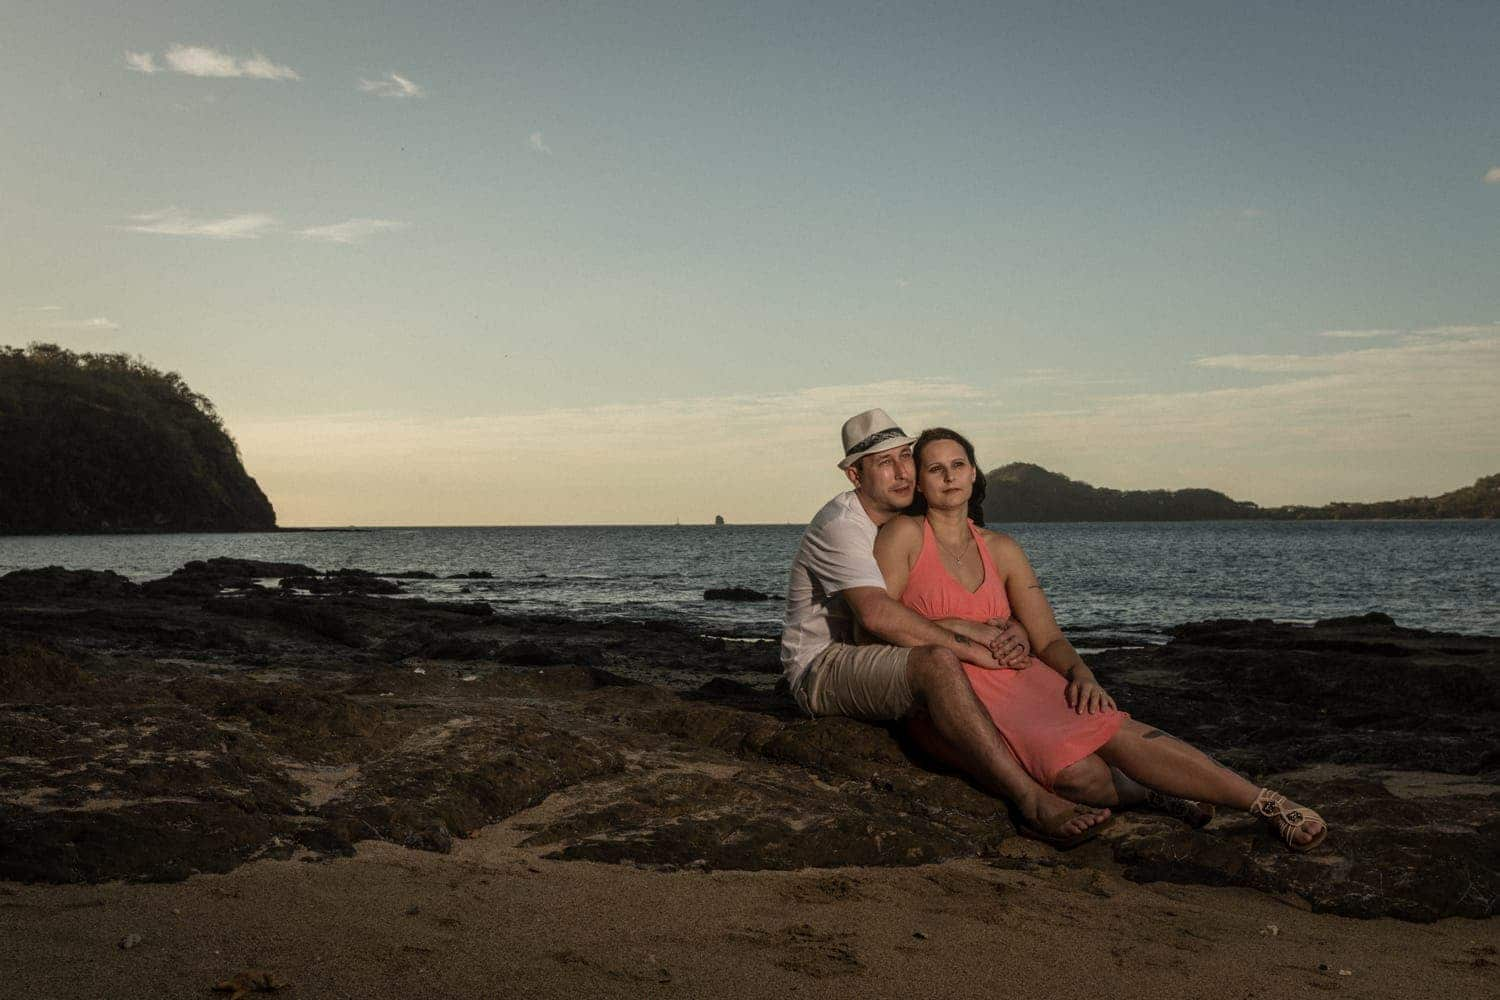 Soon-to-be-married couple pose for romantic beach engagement photo.